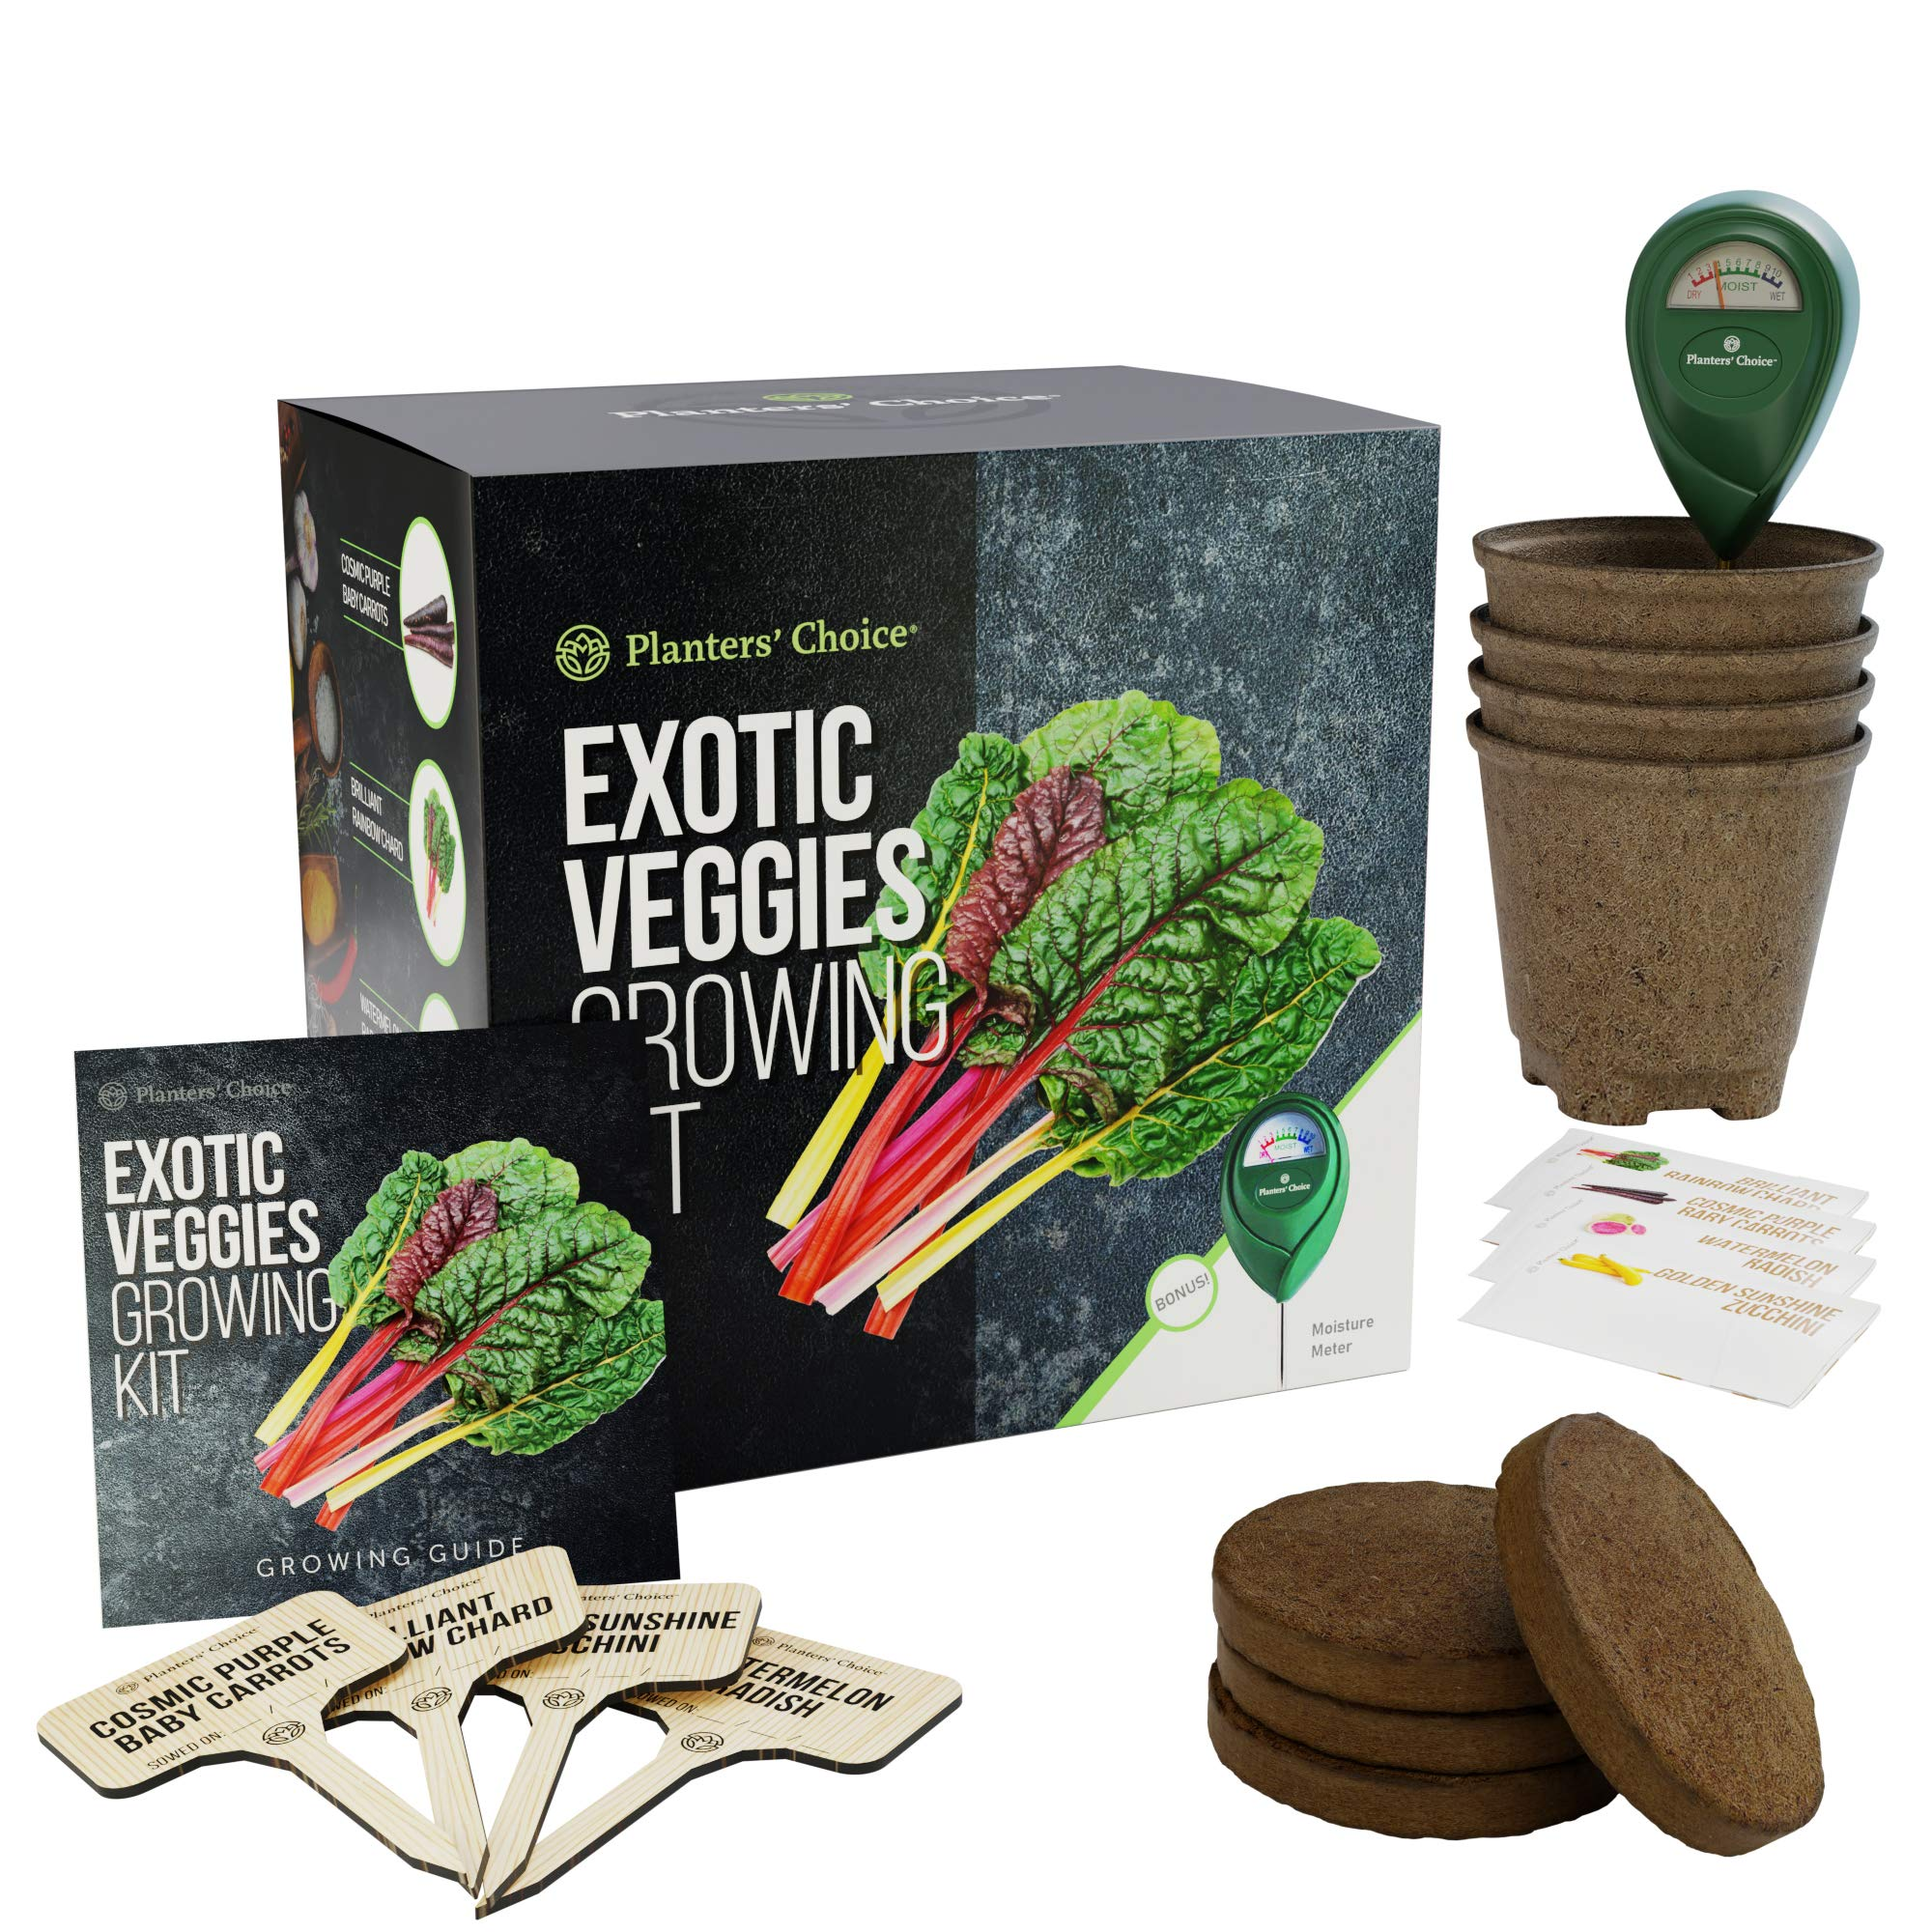 Exotic Veggies Growing Kit - Everything Included to Easily Grow 4 Unique Vegetables from Seed - Carrots, Chard, Radish, Zucchini + Moisture Meter by Planters' Choice (Image #1)